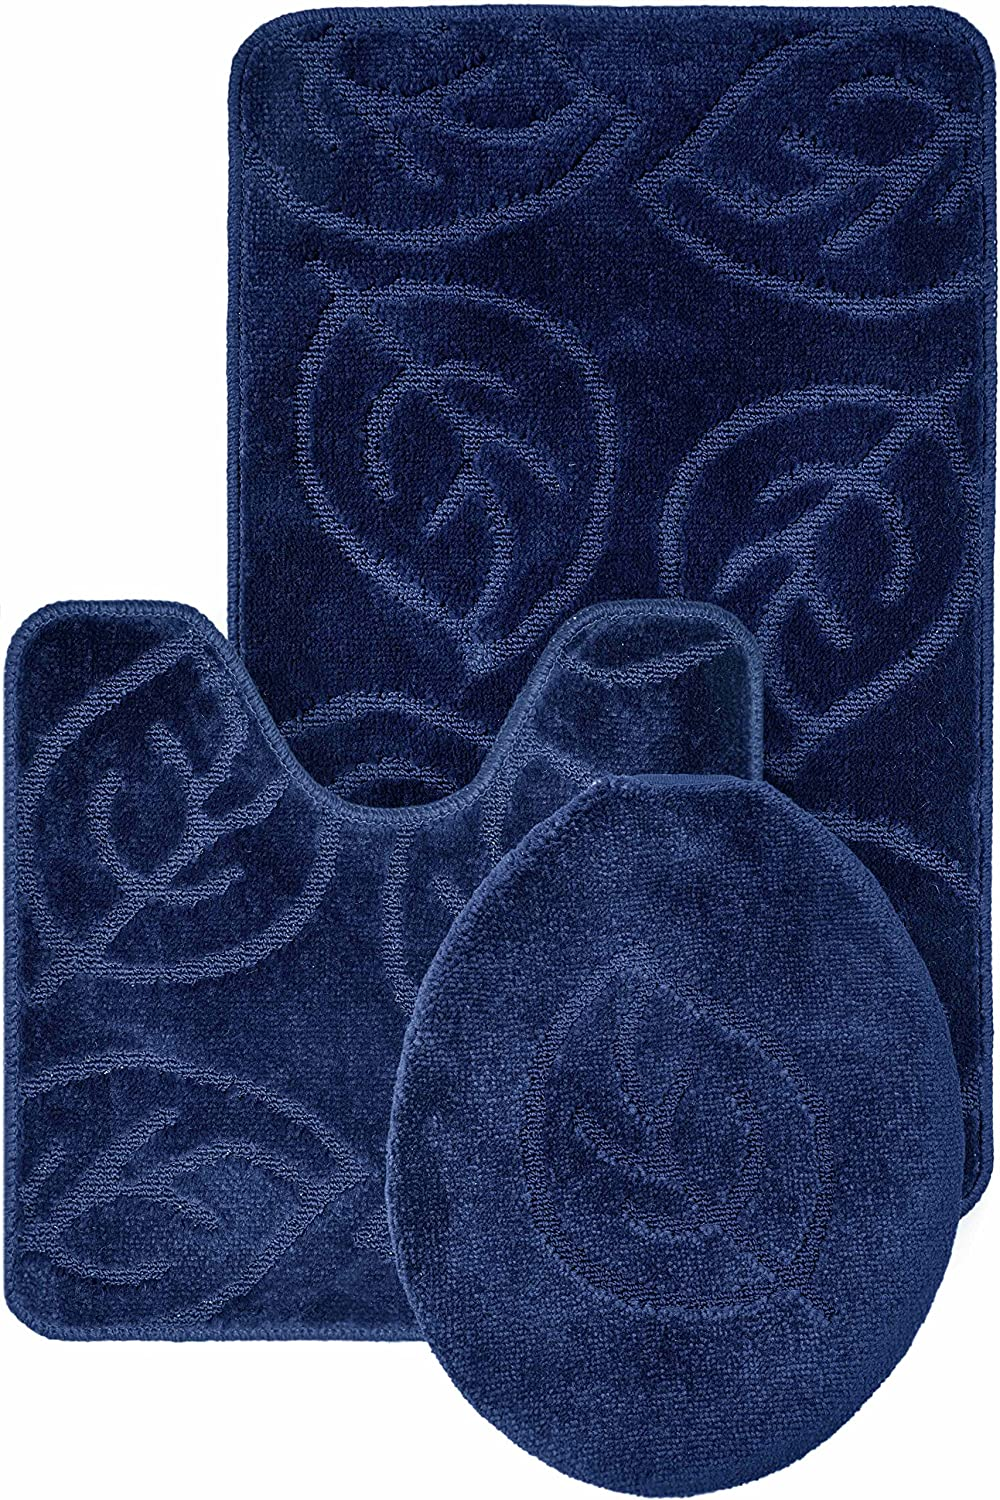 18x18 Contour Mat Everdayspecial Purple Bath Set Leaf Pattern Bathroom Rug Soft and Ultra Absorbent with Anti-Slip Backing 18x19 18x29 29x18 Lid Cover